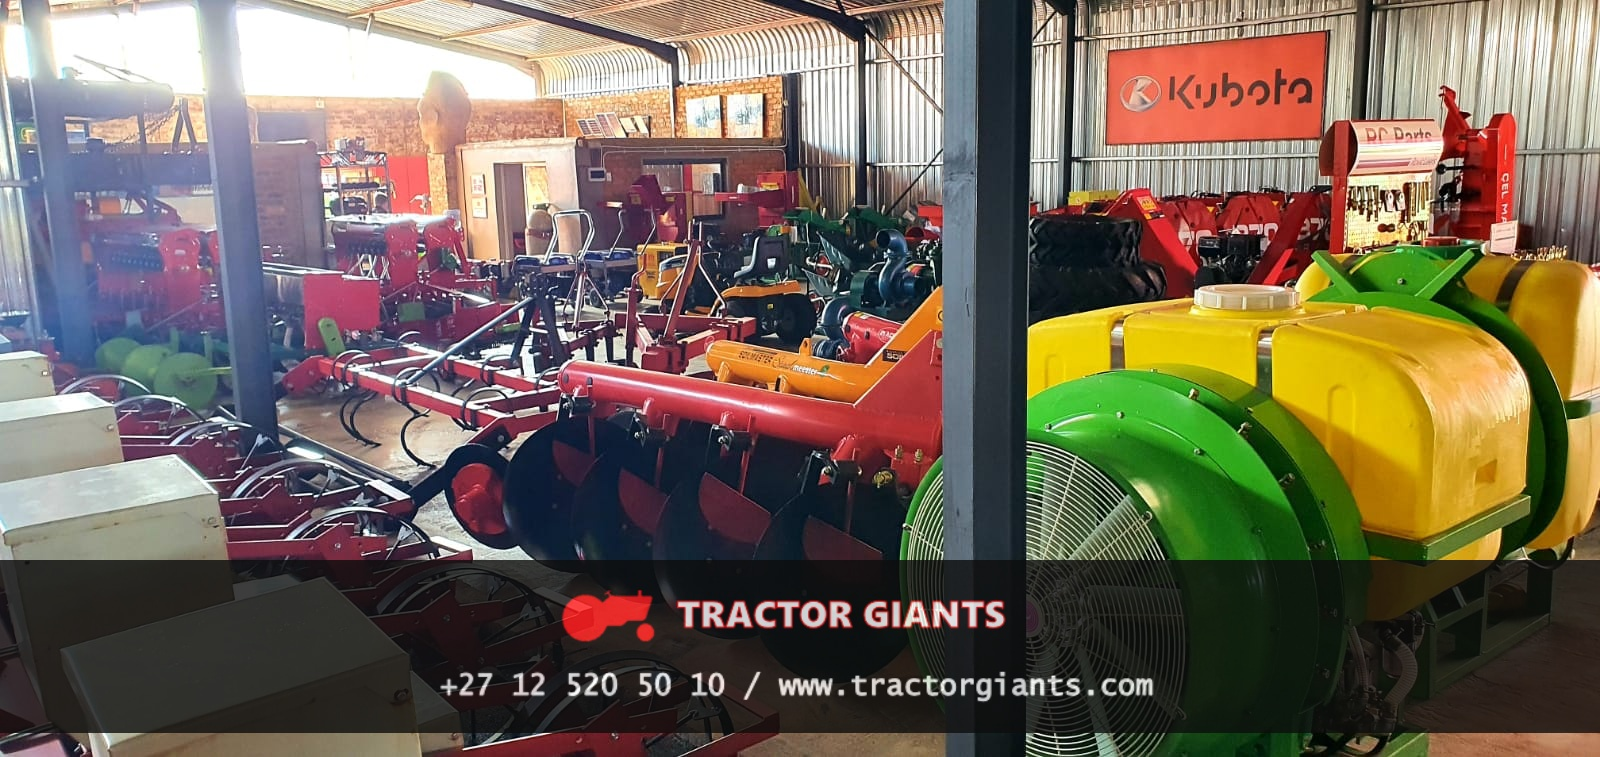 Farming Implements - Tractor Giants